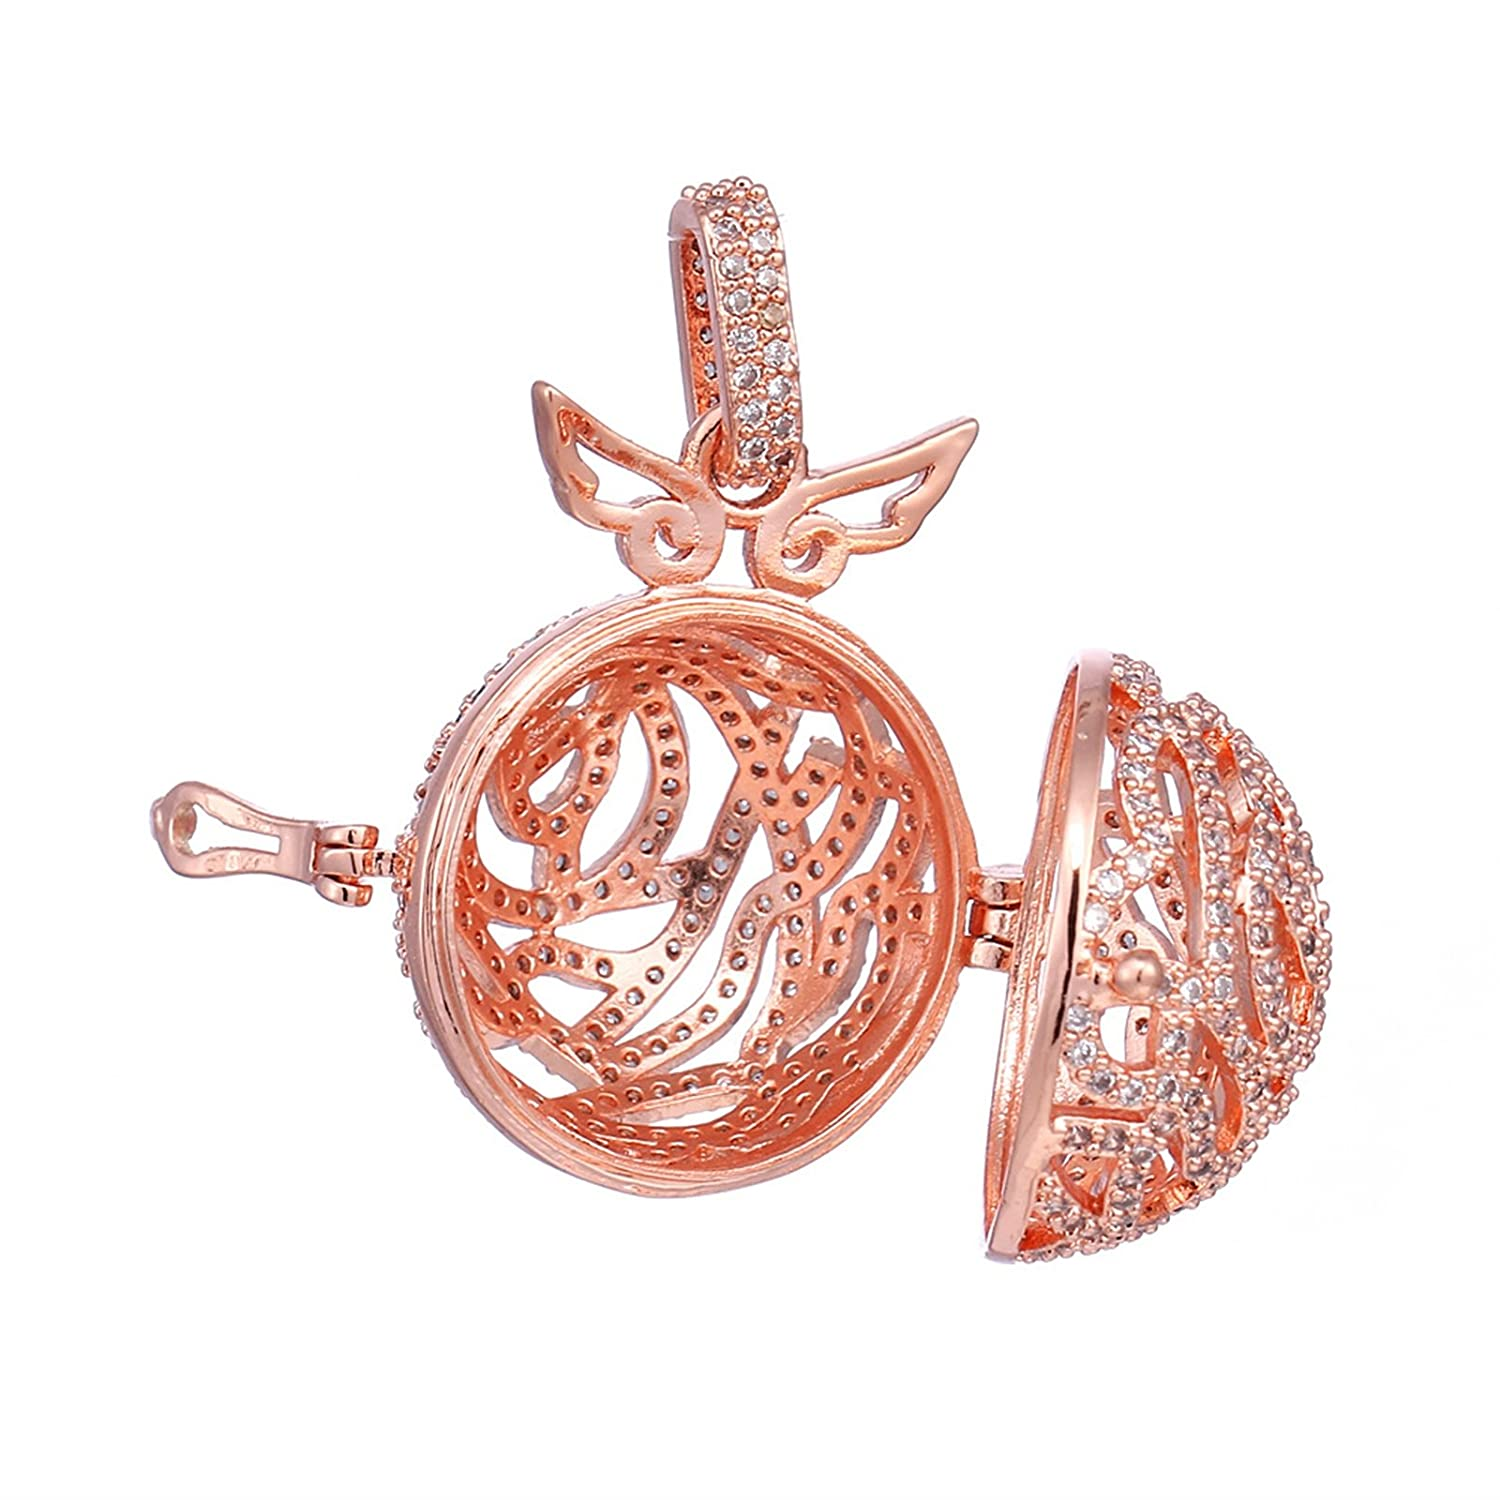 Beydodo Aromatherapy Diffuser Necklace Oils Hollow Round Wing White Cubic Zirconia